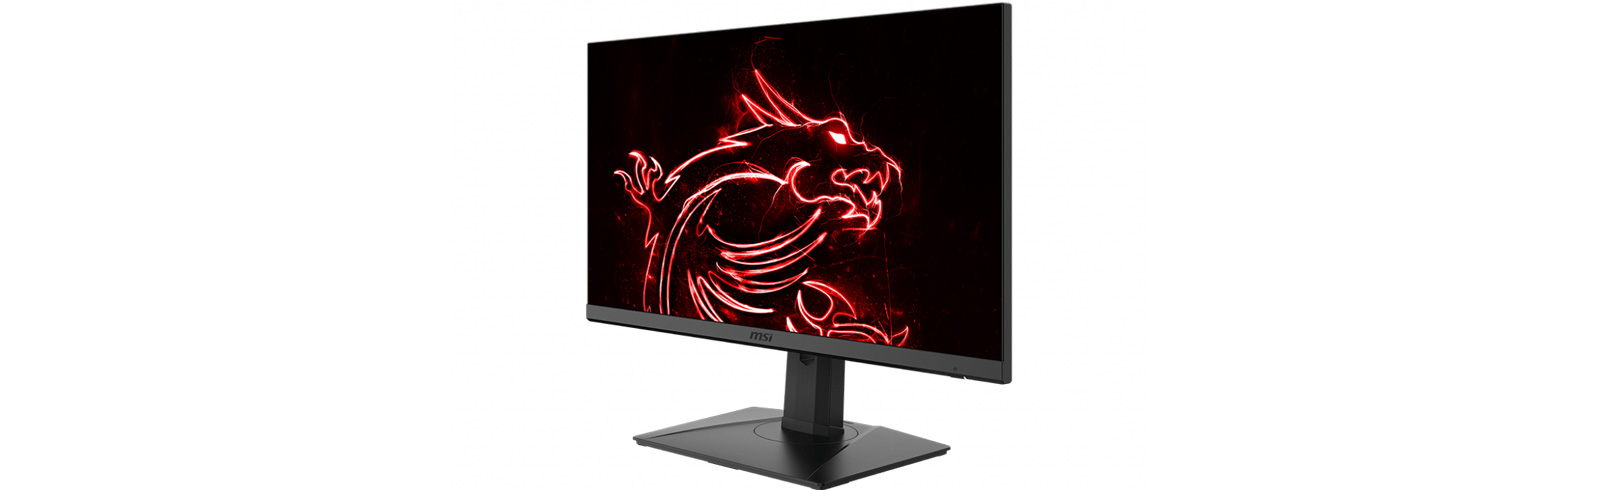 """The MSI Optix MAG275R is unveiled with a 27"""" IPS FHD display, 144Hz refresh rate, fully ergonomic stand"""